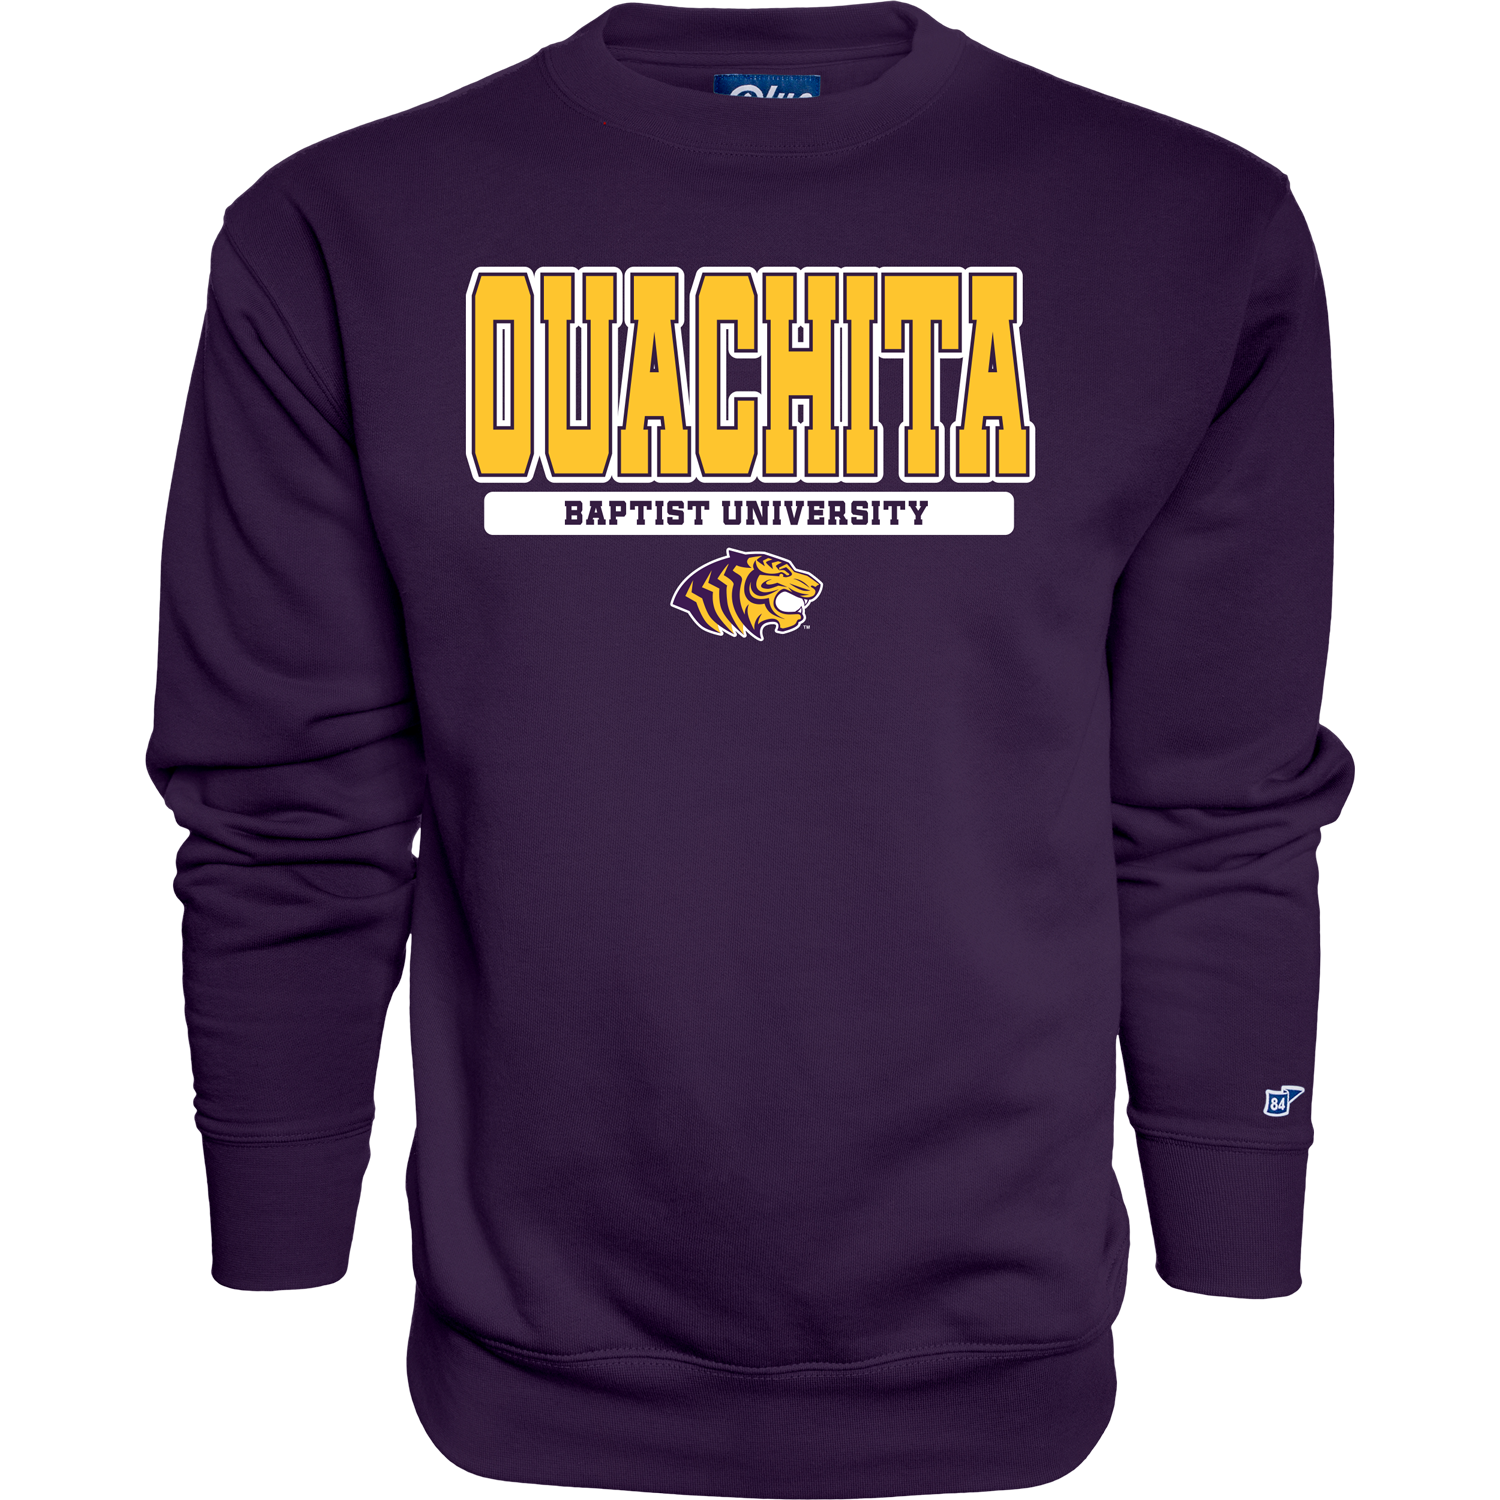 OUACHITA BAPTIST UNIVERSITY CREW SWEATSHIRT